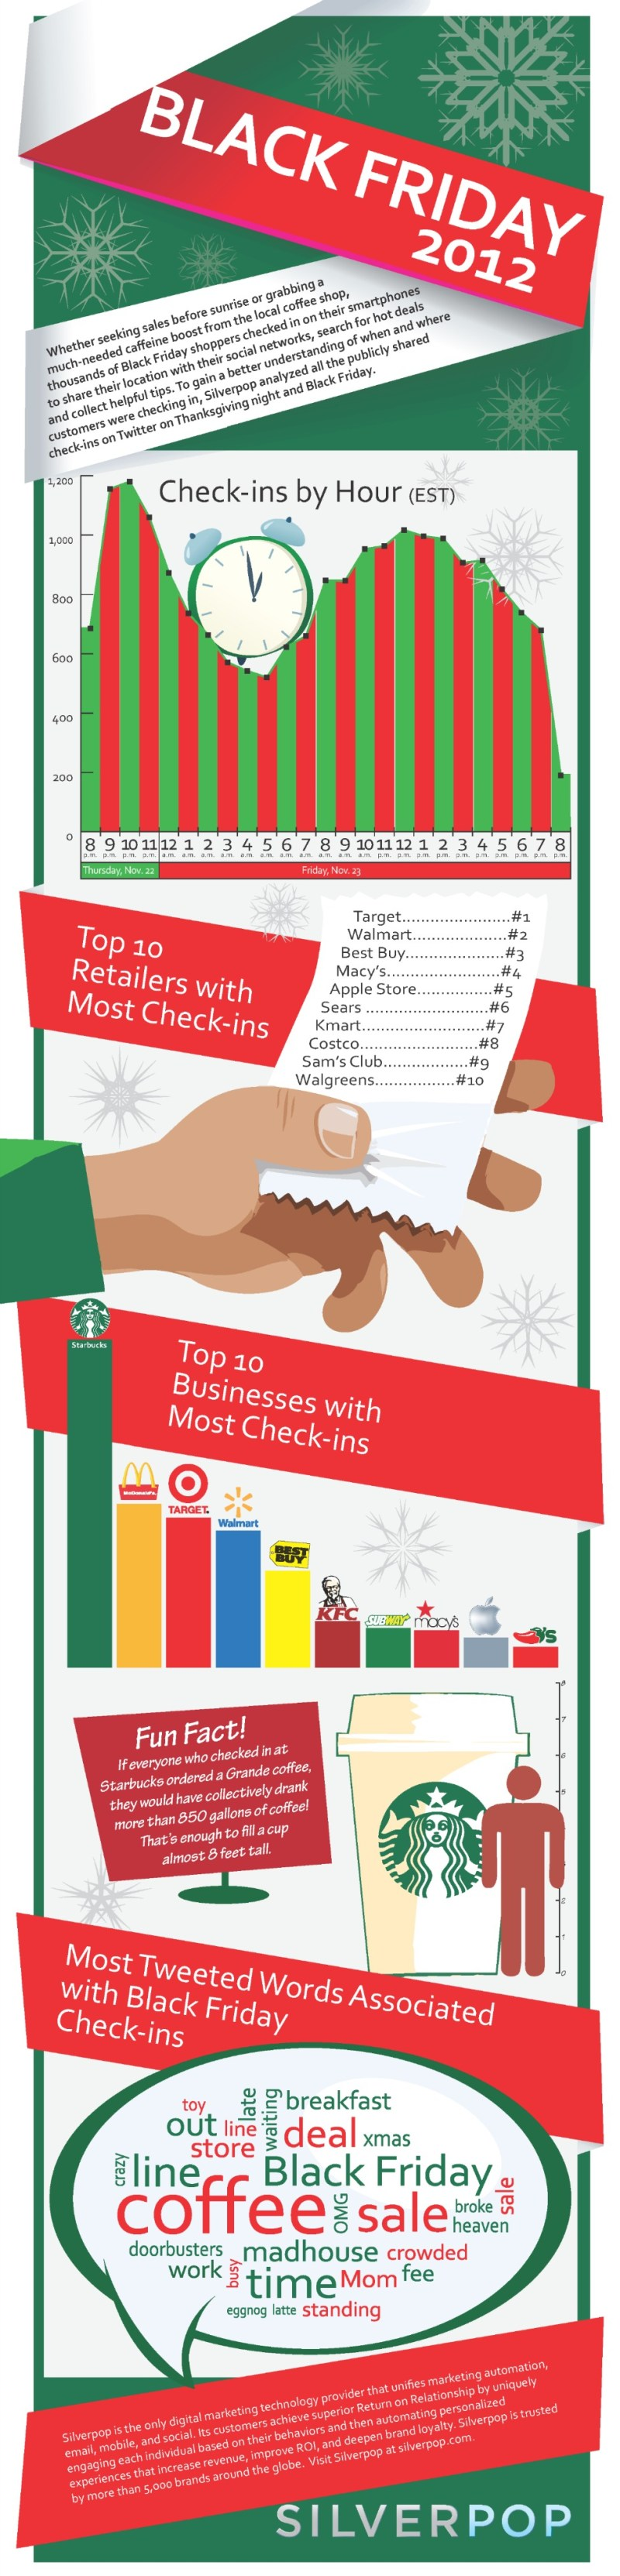 Infographic - Black Friday Check-Ins & Tweets